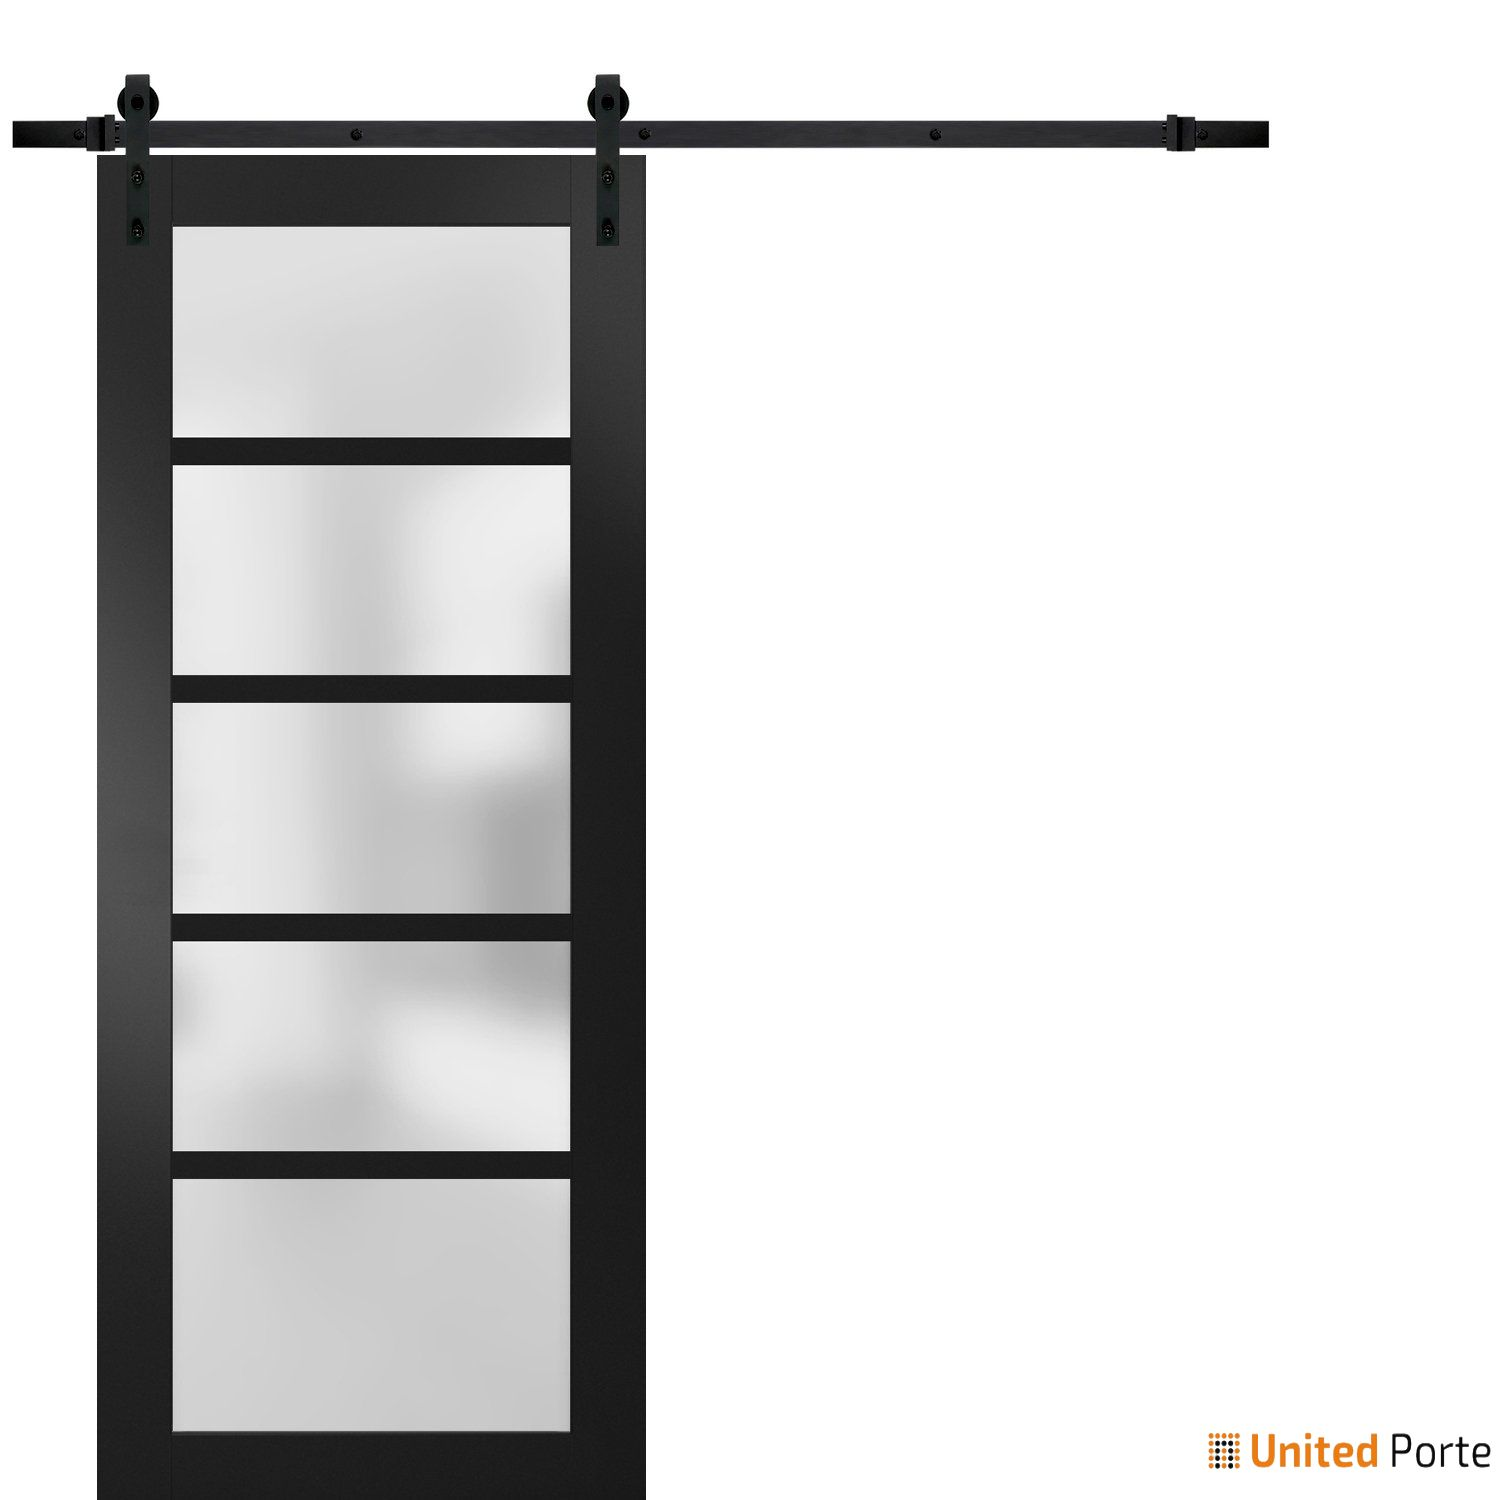 Quadro 4002 Matte Black with Frosted Opaque Glass Sliding Barn Door with Black Hardware | Lite Wooden Solid Panel Interior Barn Doors